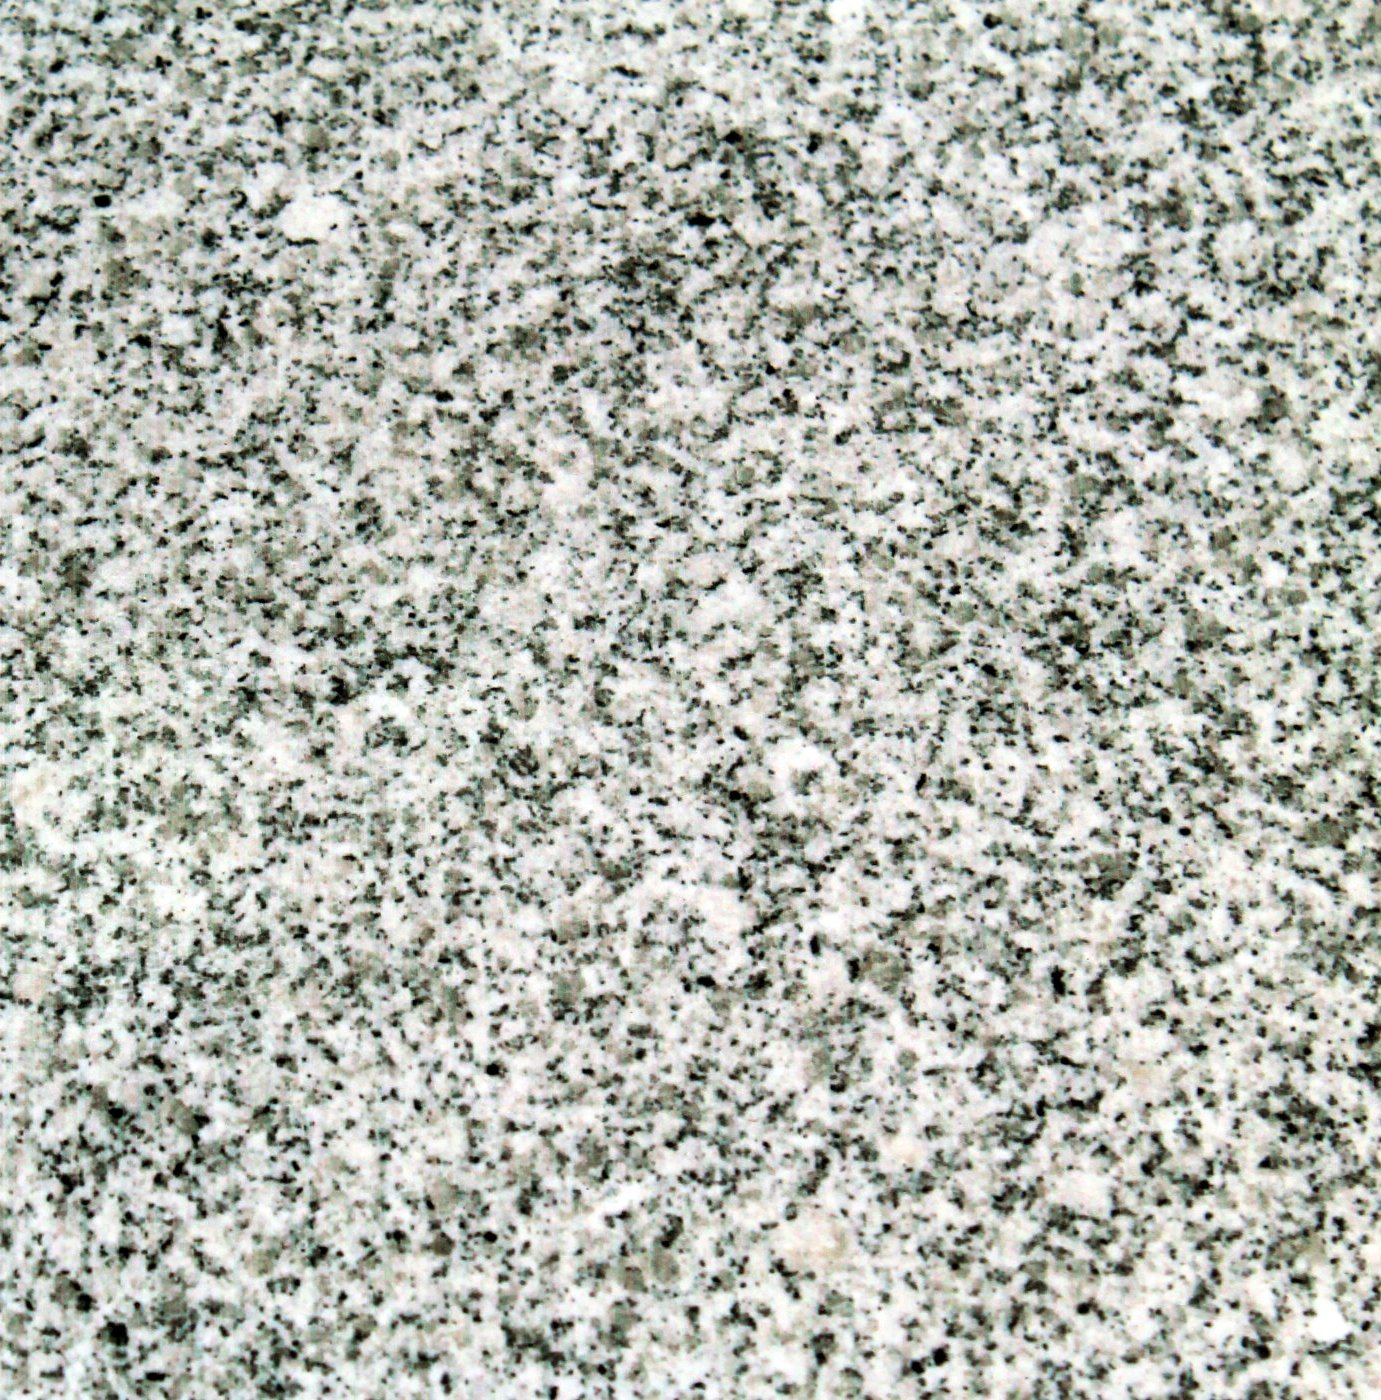 "Instant Granite Luna Pearl Counter Top Film 36'' x 36"" Self Adhesive Vinyl Laminate Counter Top Contact Paper Faux Peel and Stick Self Application by Instant Granite"